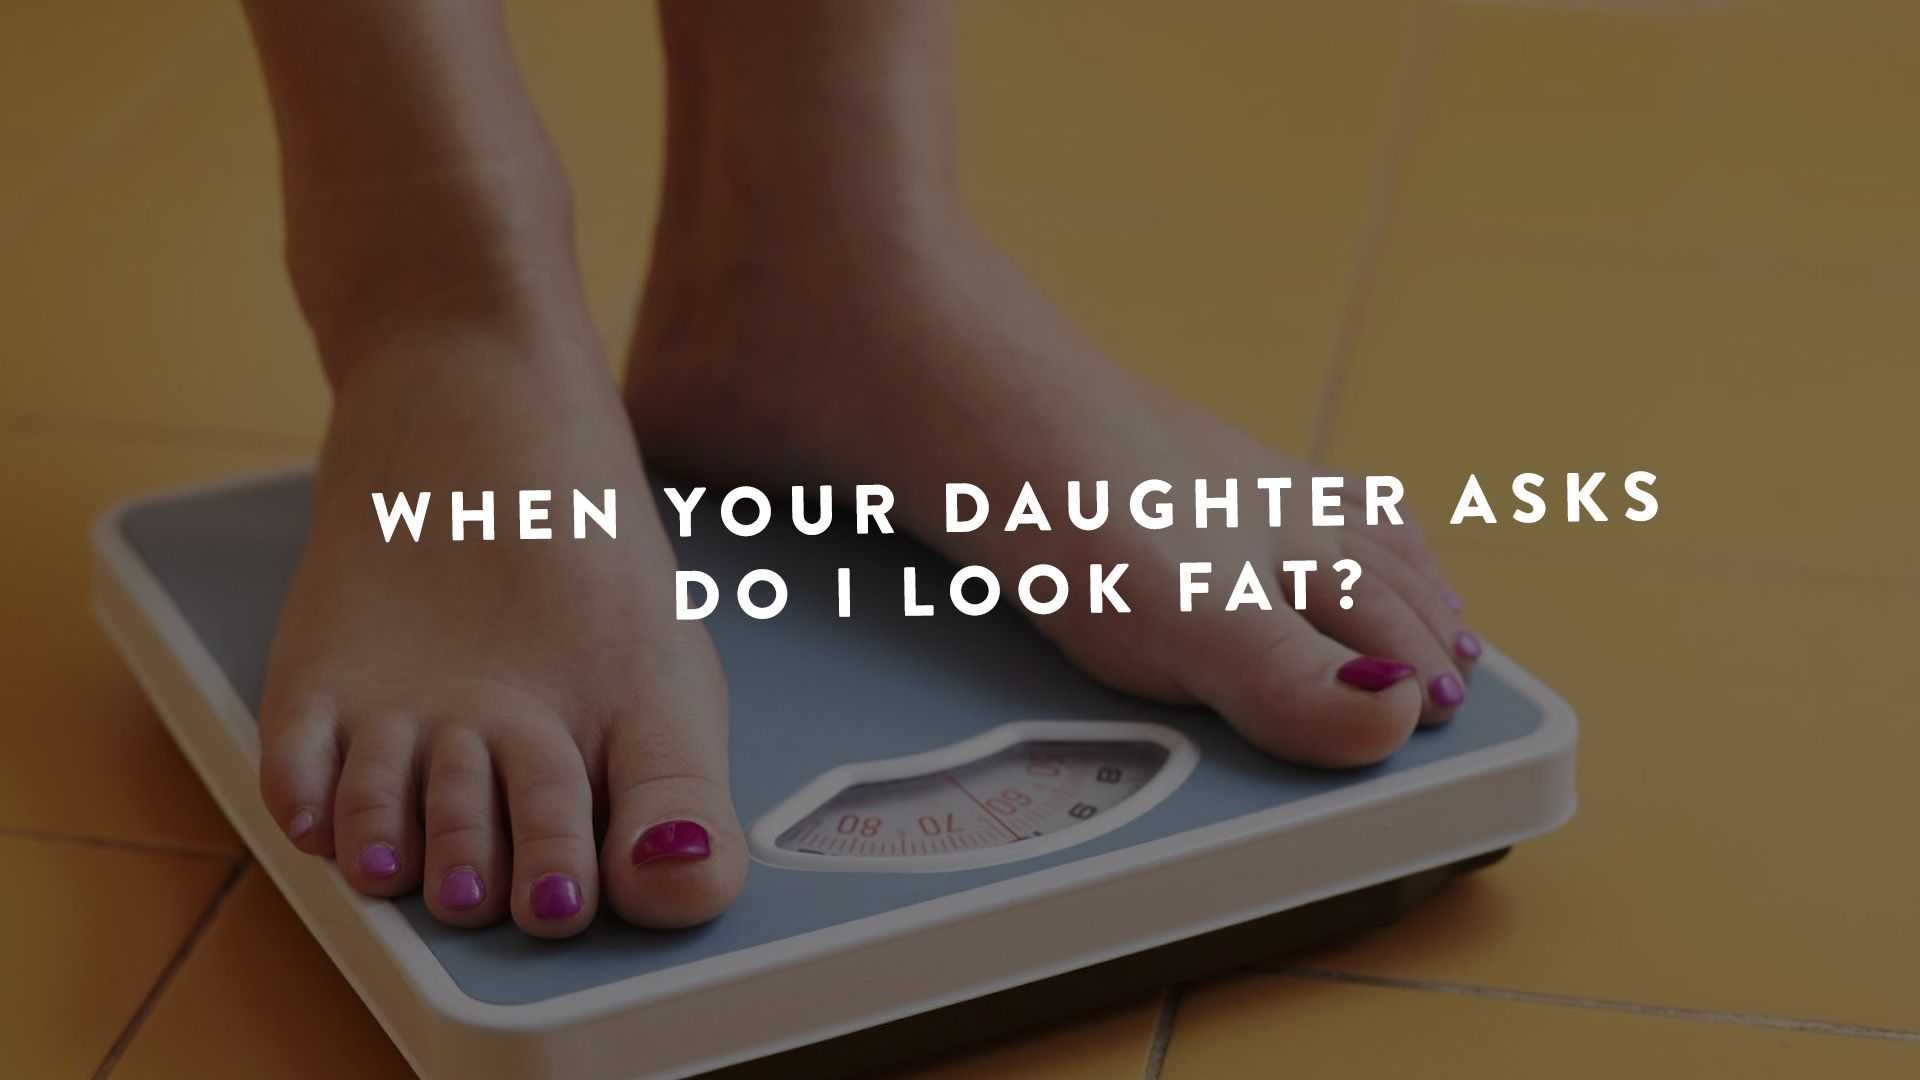 When Your Daughter asks Do I look fat?